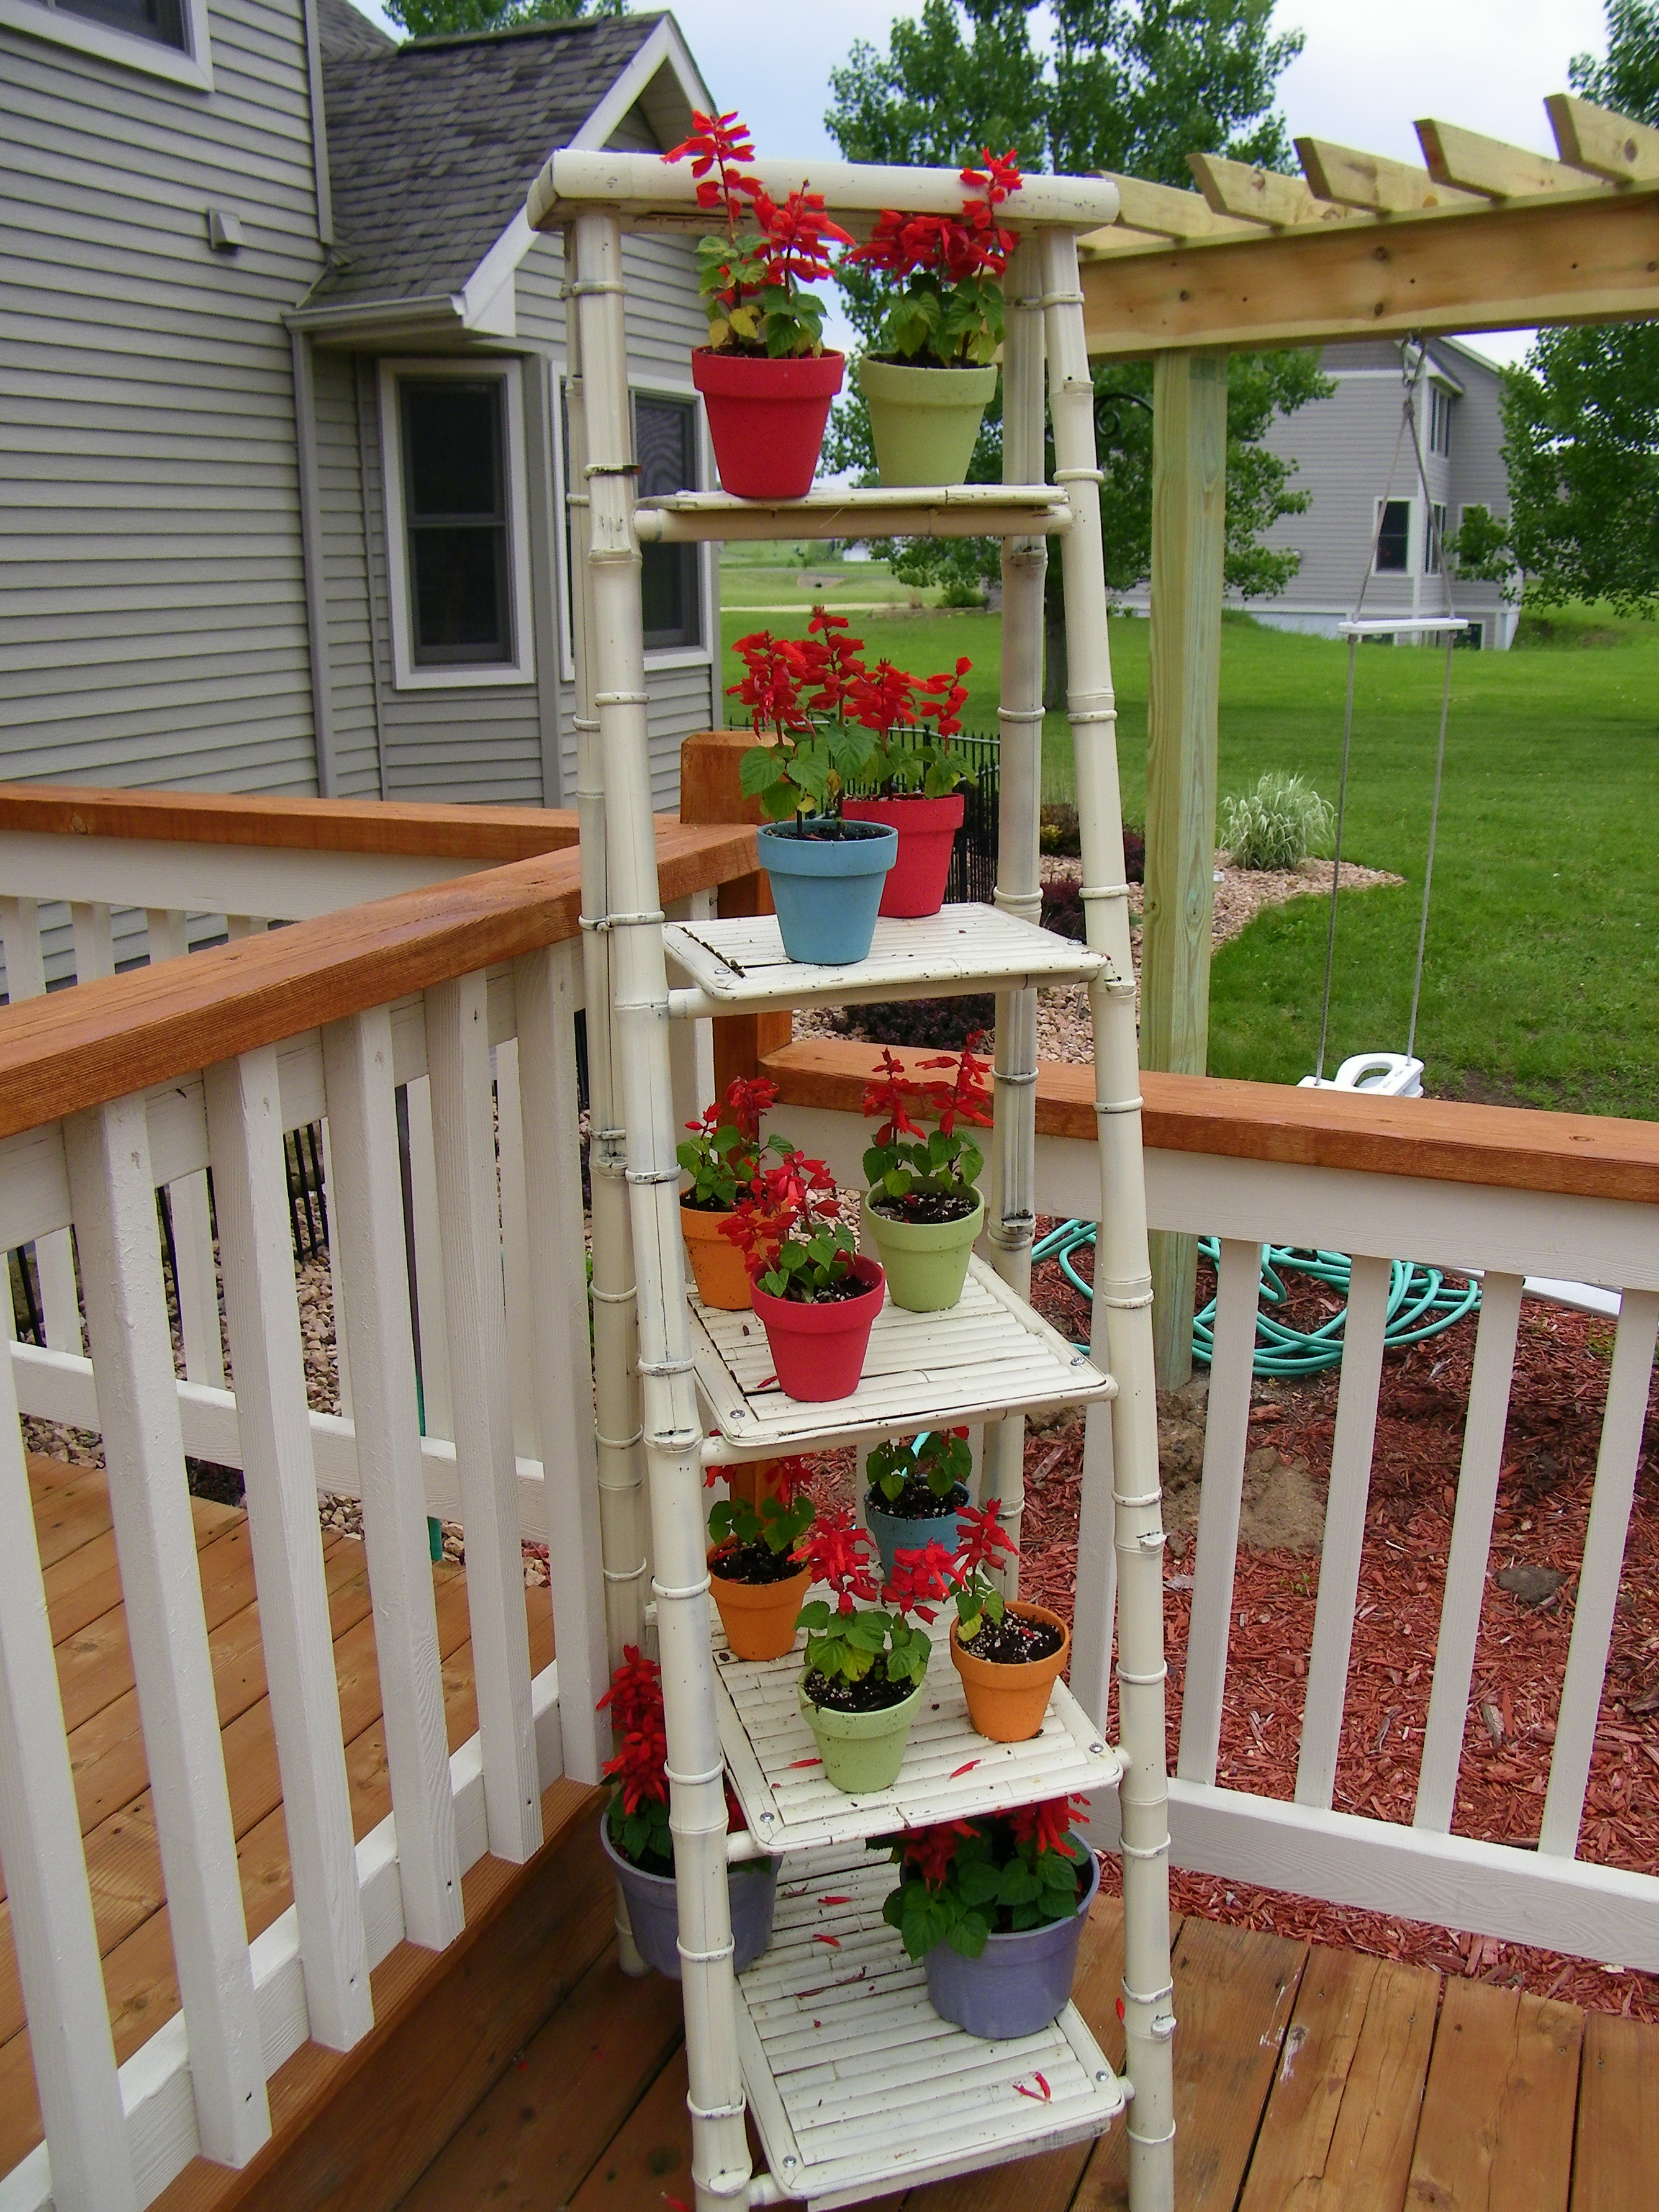 Lowes deck designer for a deck with a outdoor d how does a low deck lowes deck taking advantage - Deck rail planters lowes ...